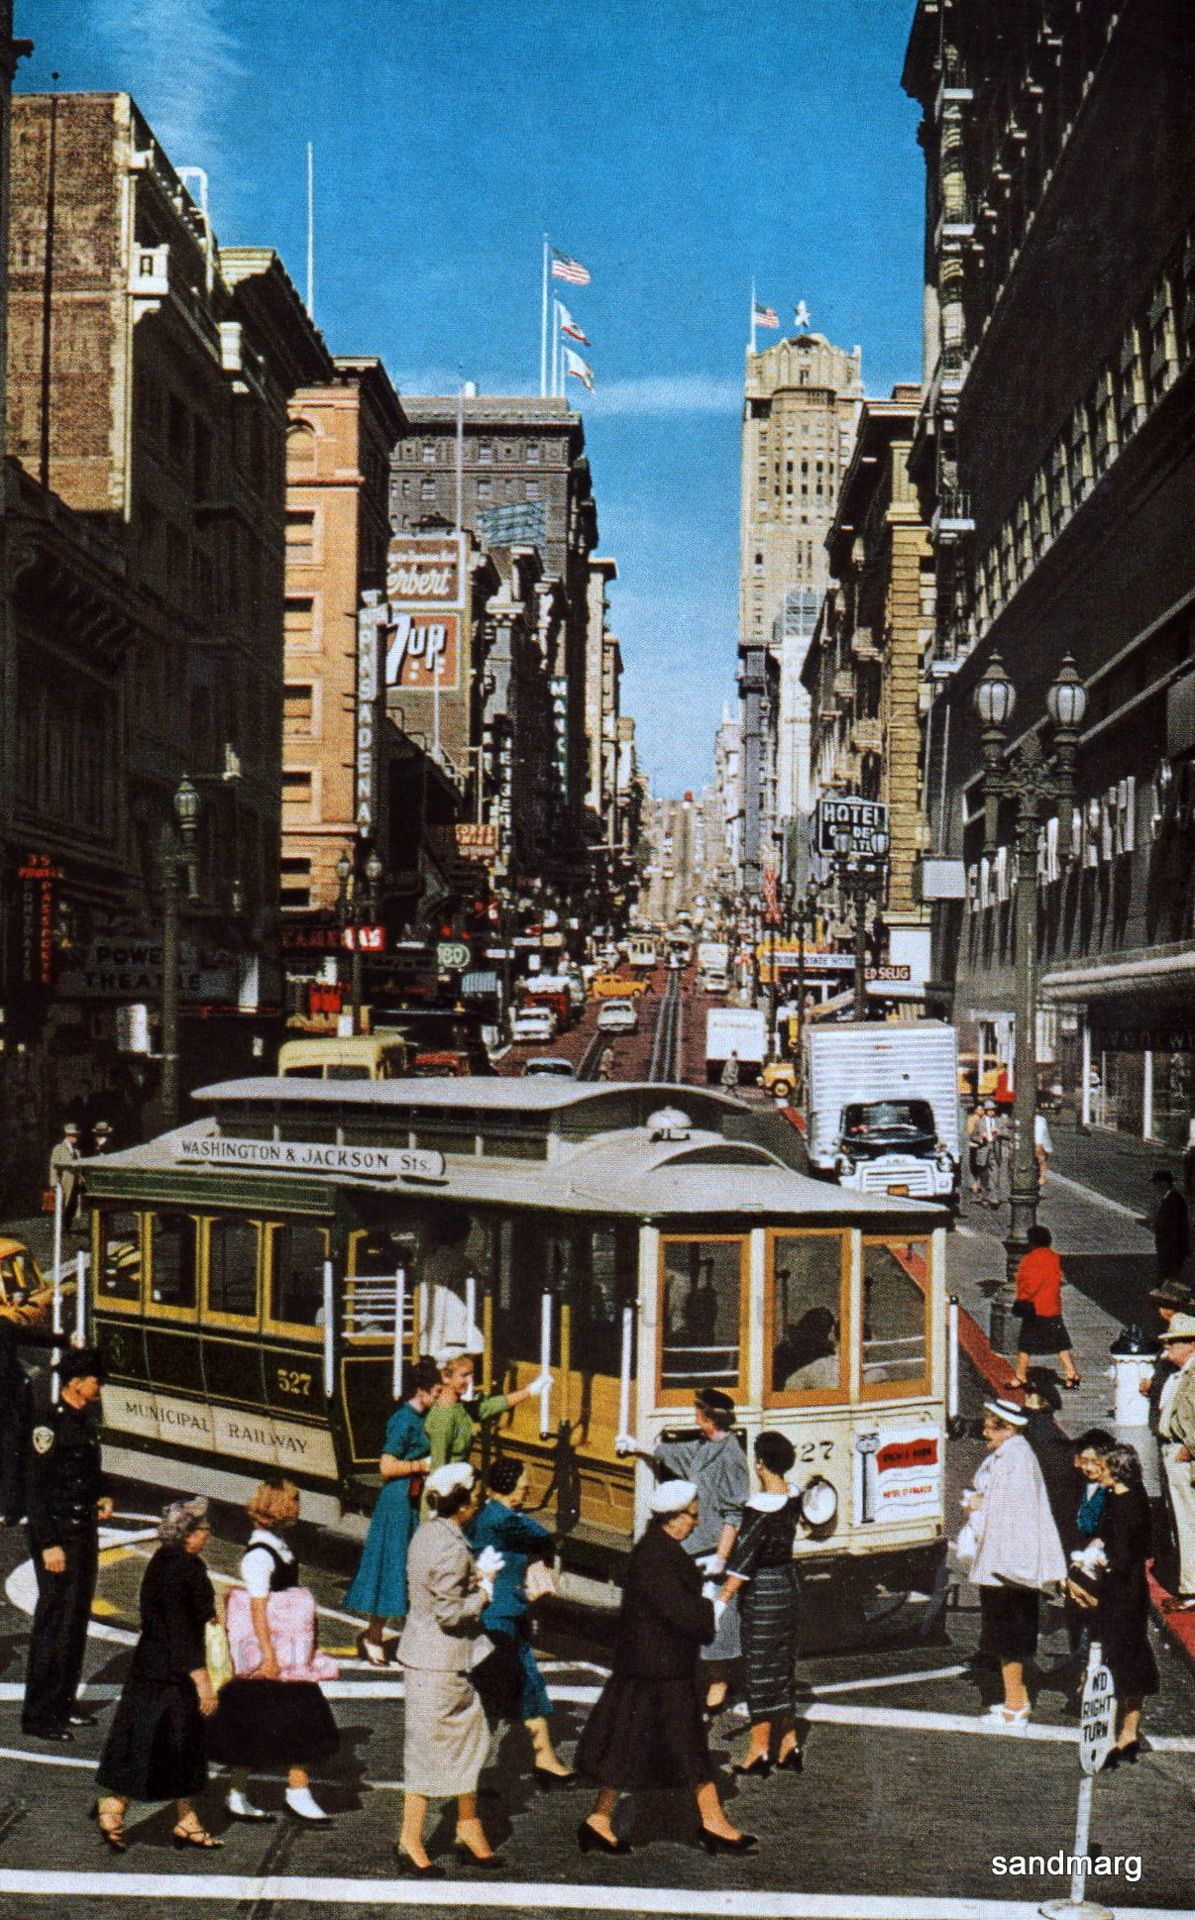 1956 San Francisco Cable Car, when women wore hats, gloves and heels to shop in the City.